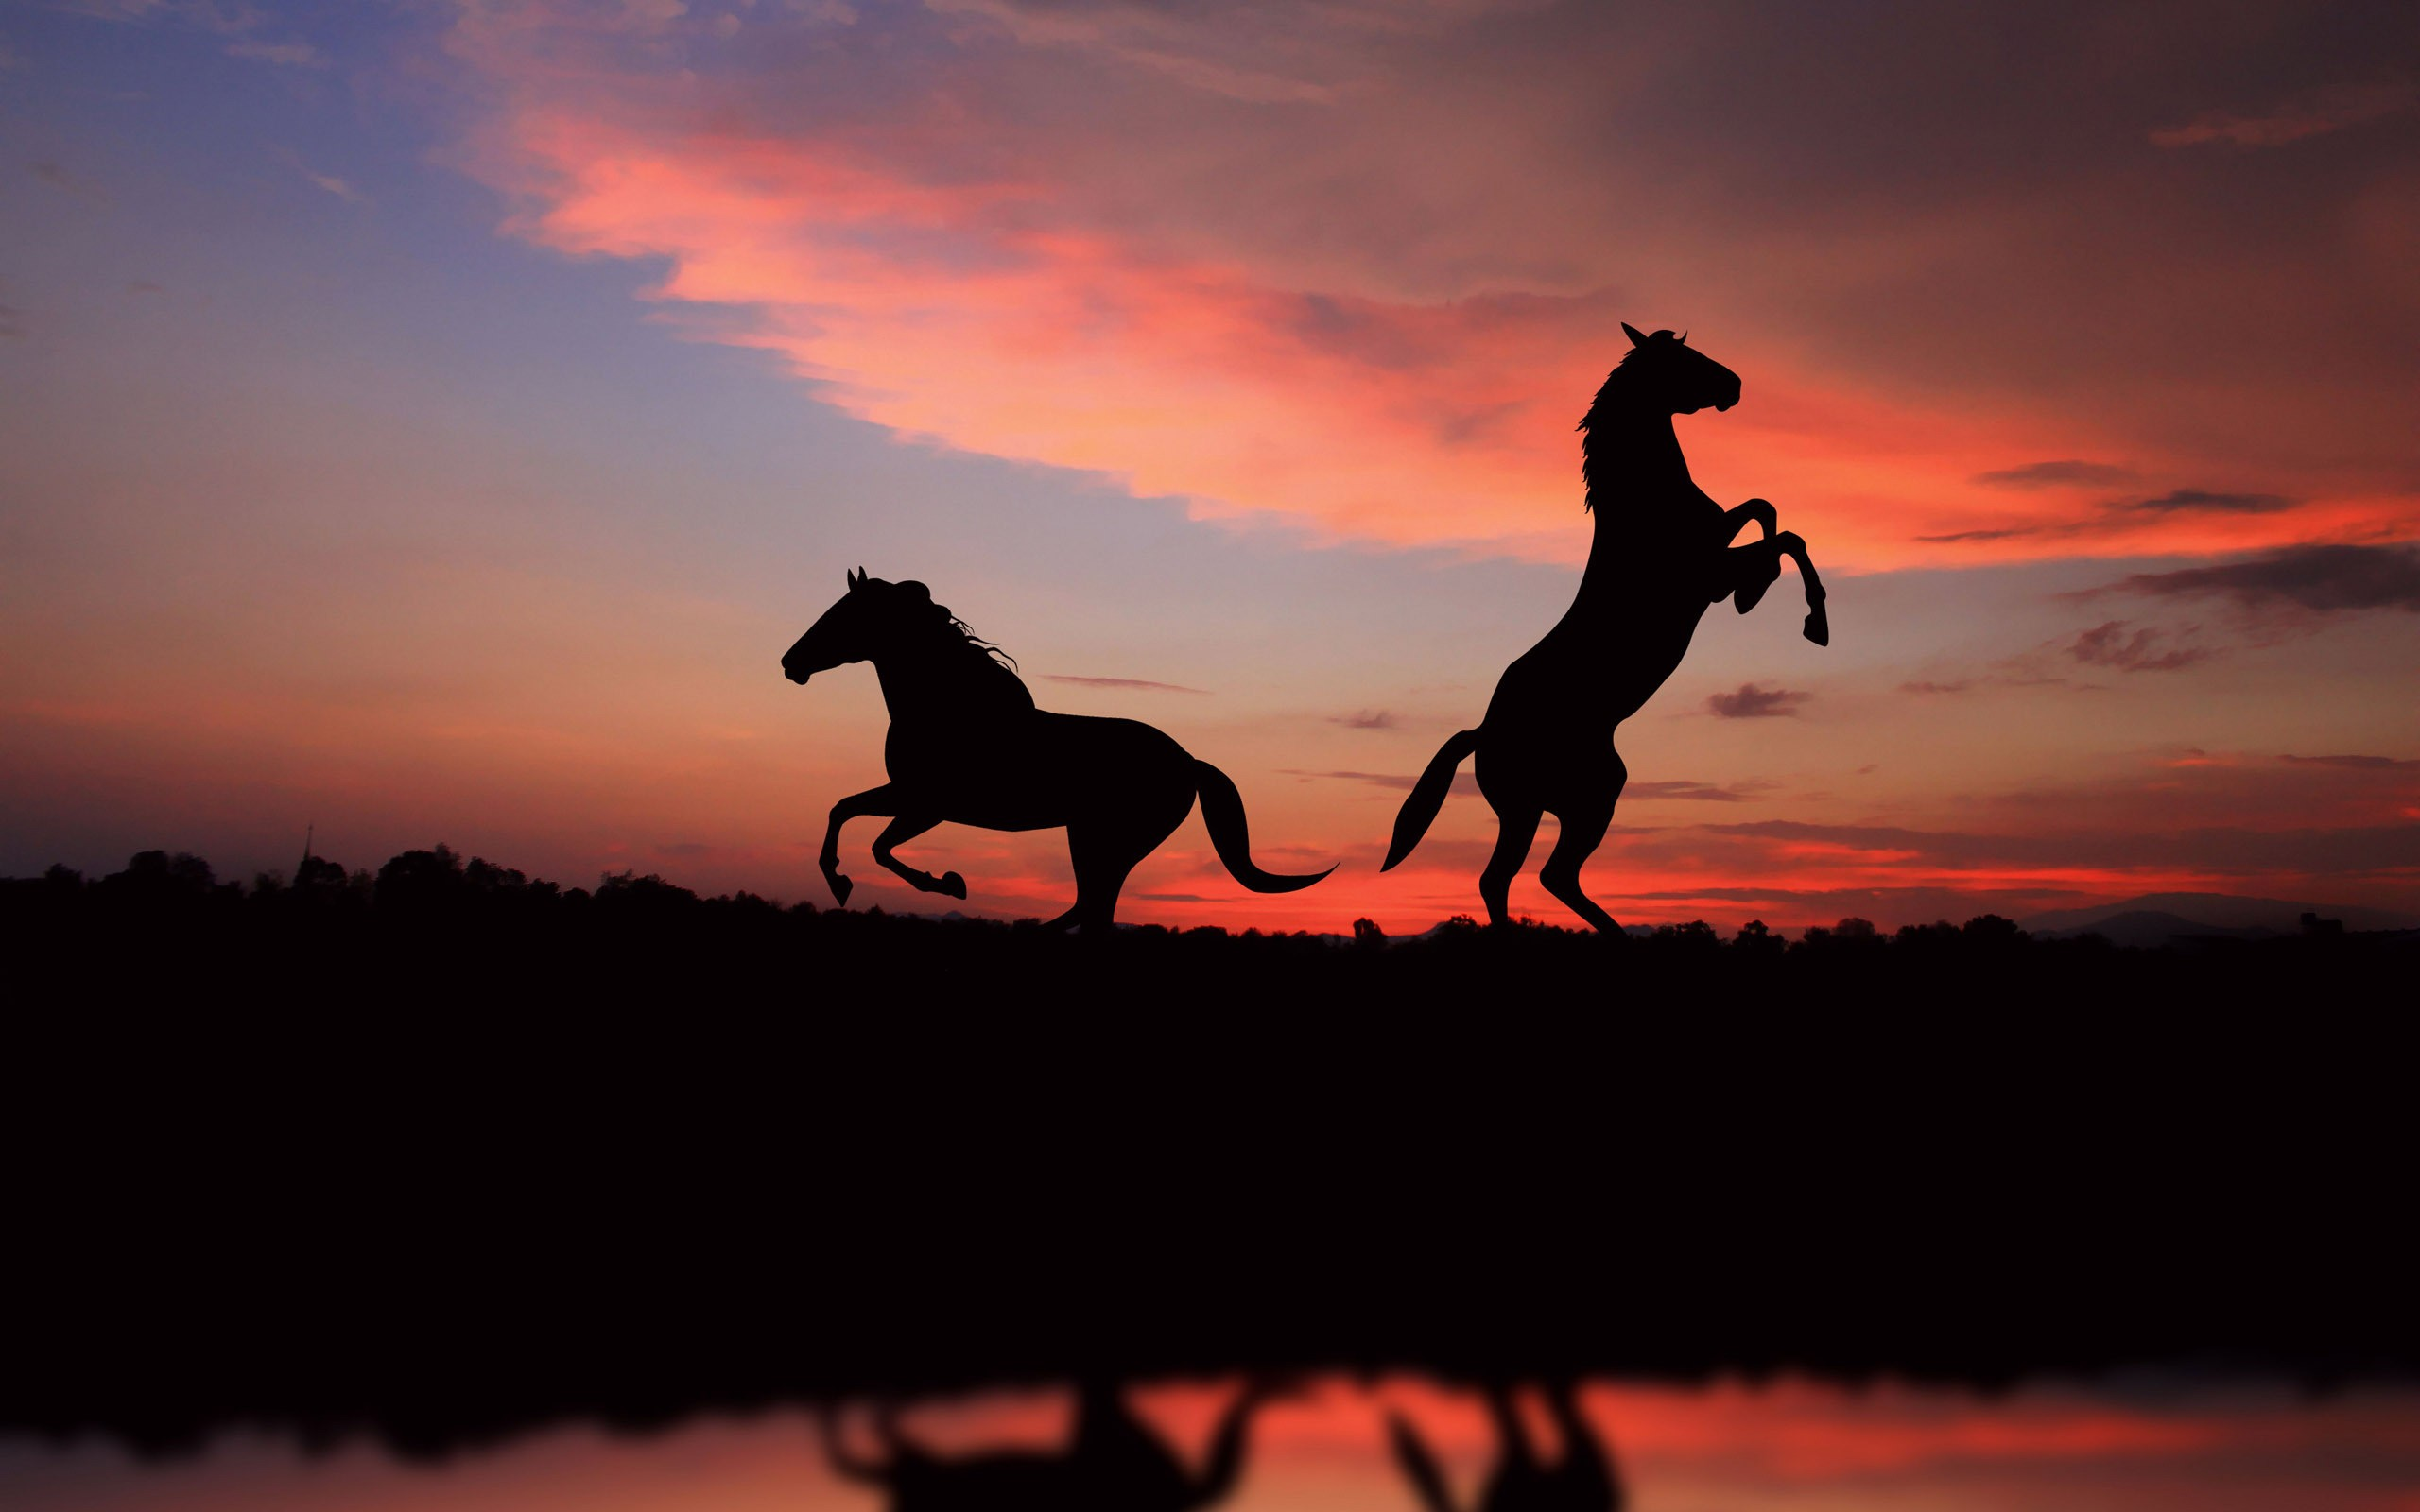 Horse Silhouettes In The Sunset Wallpaper 2560x1600 px